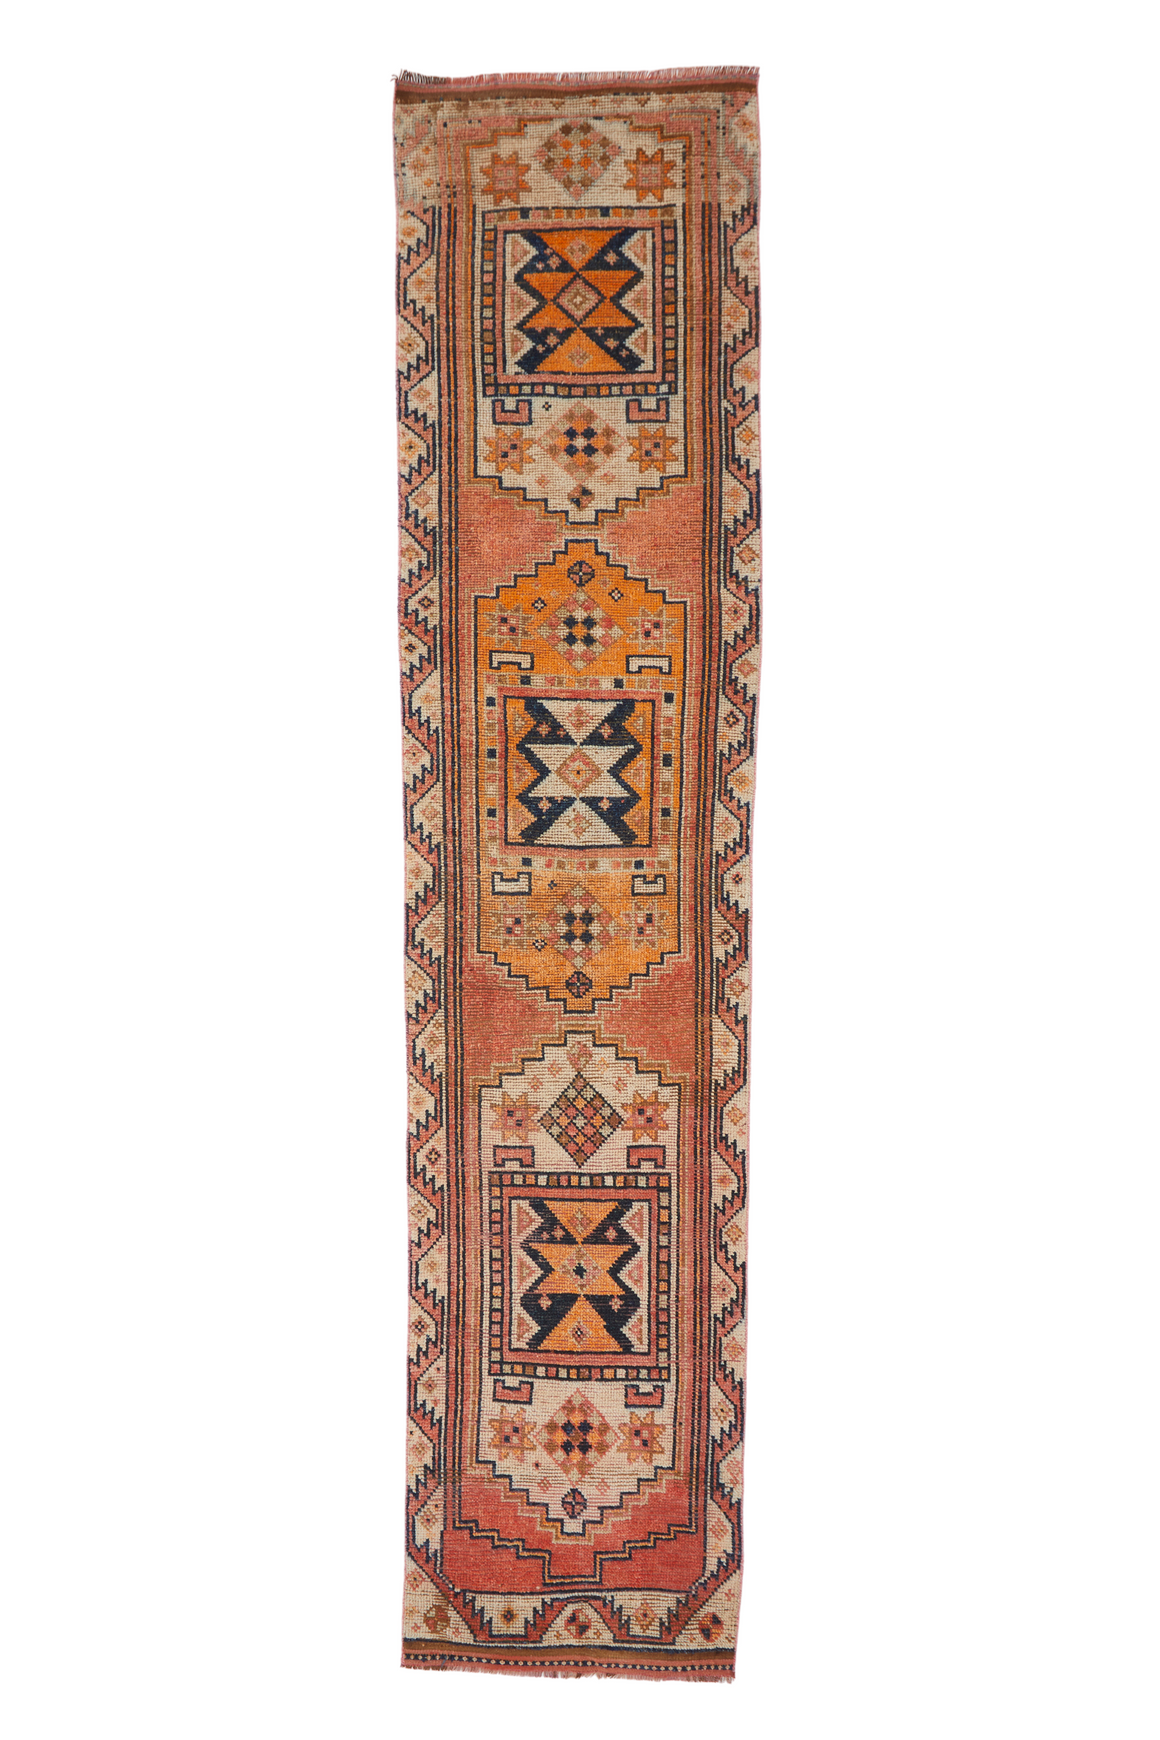 'Santa Fe' Vintage Turkish Runner (ON HOLD) - 2'9'' x 12'3""